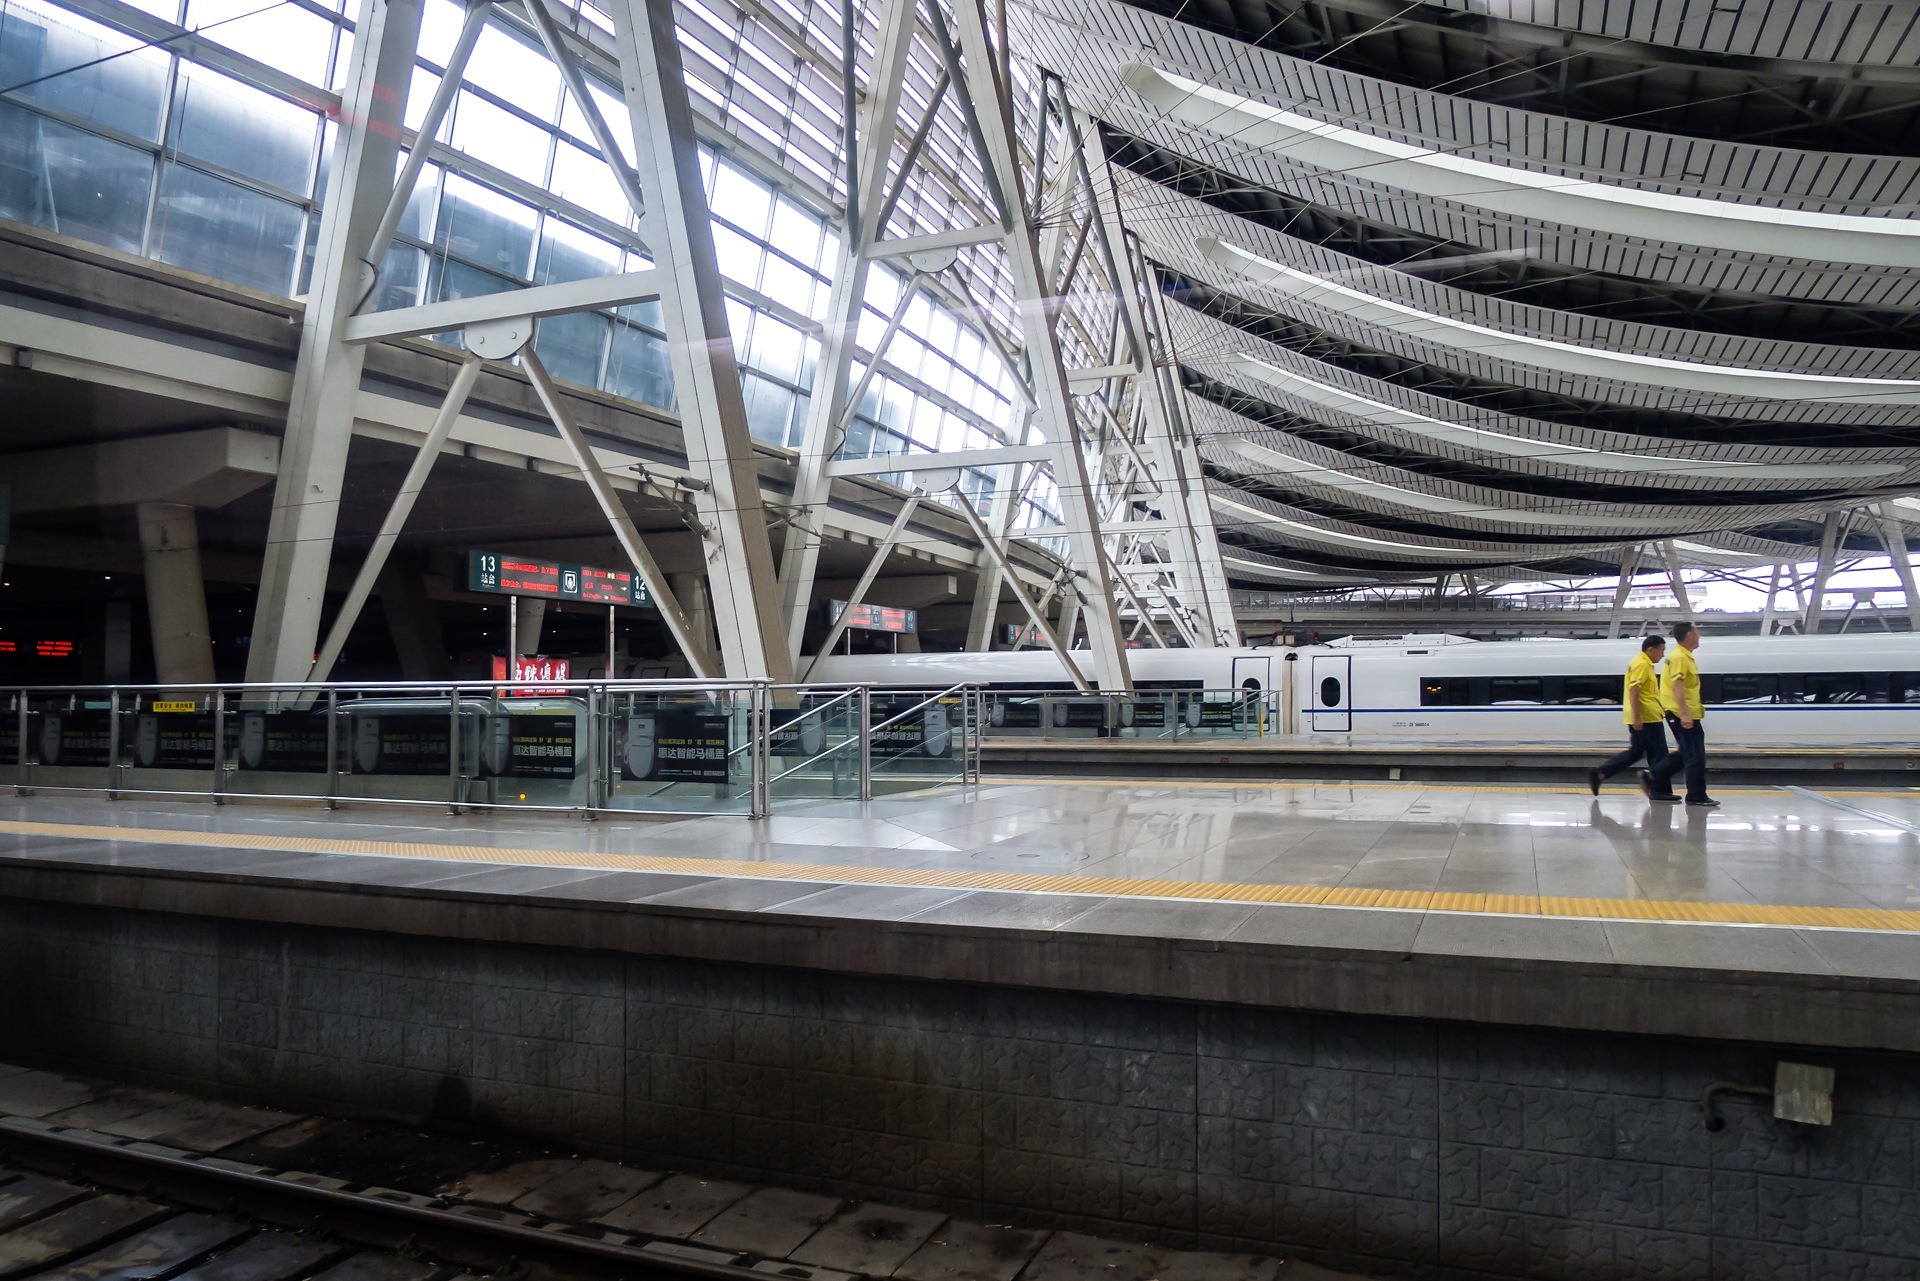 Beijing Shi, South Railway Station